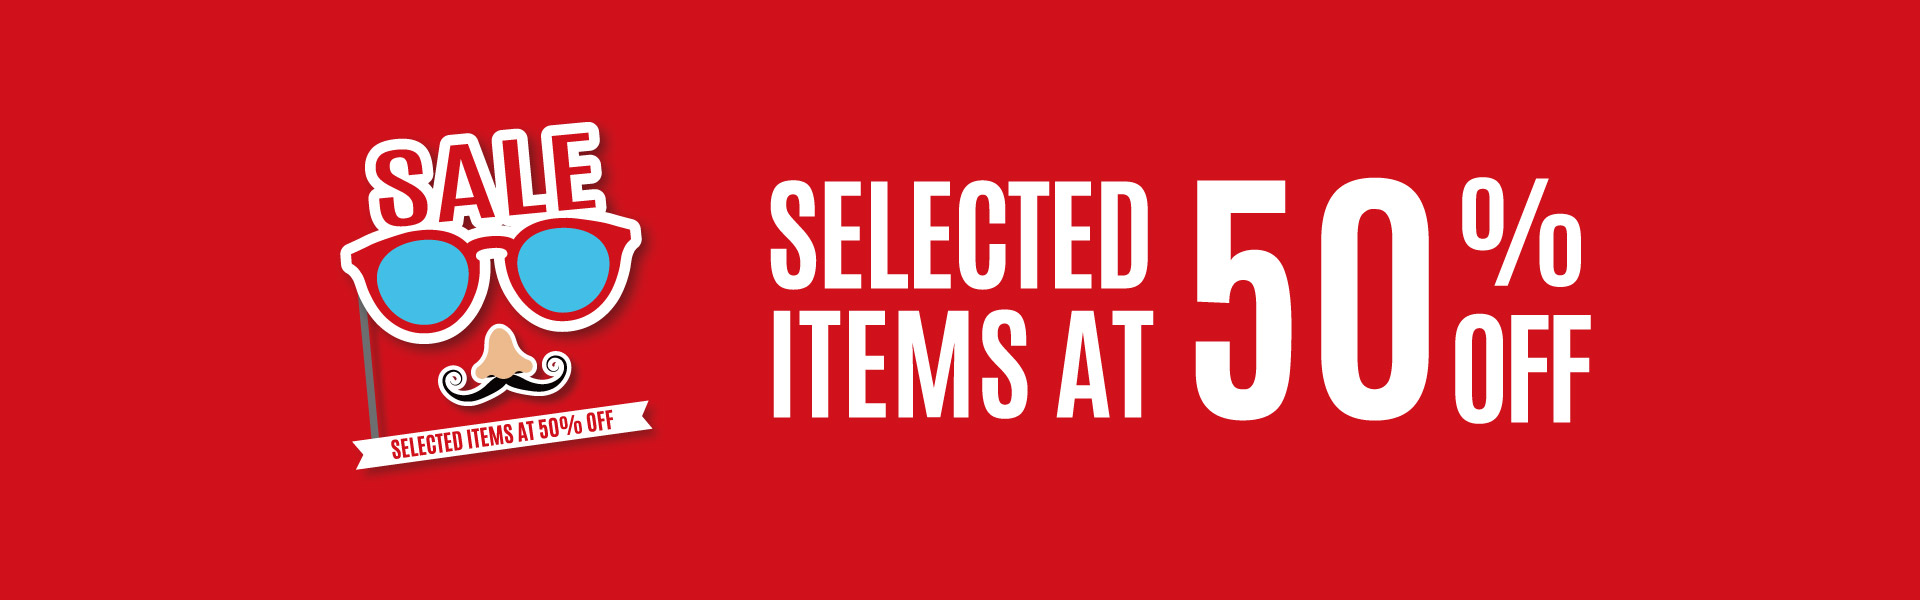 SELECTED ITEMS AT 50%OFF